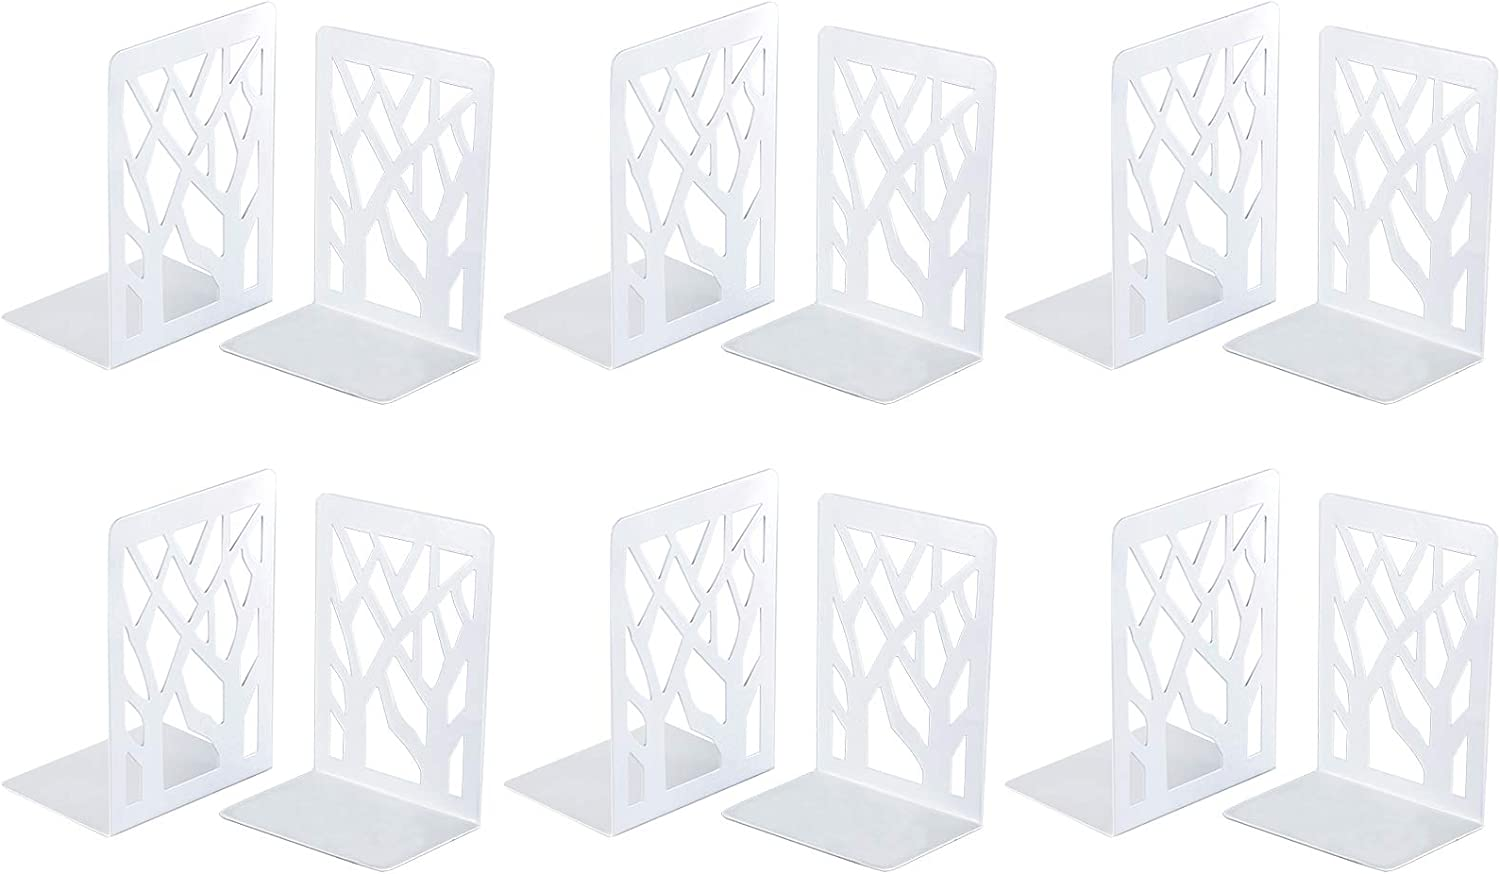 Book Ends, Bookends, Book Ends for Shelves, Bookends for Shelves, Bookend, Book Ends for Heavy Books, Book Shelf Holder Home Decorative, Metal Bookends White 6 Pair, Bookend Supports, Book Stoppers